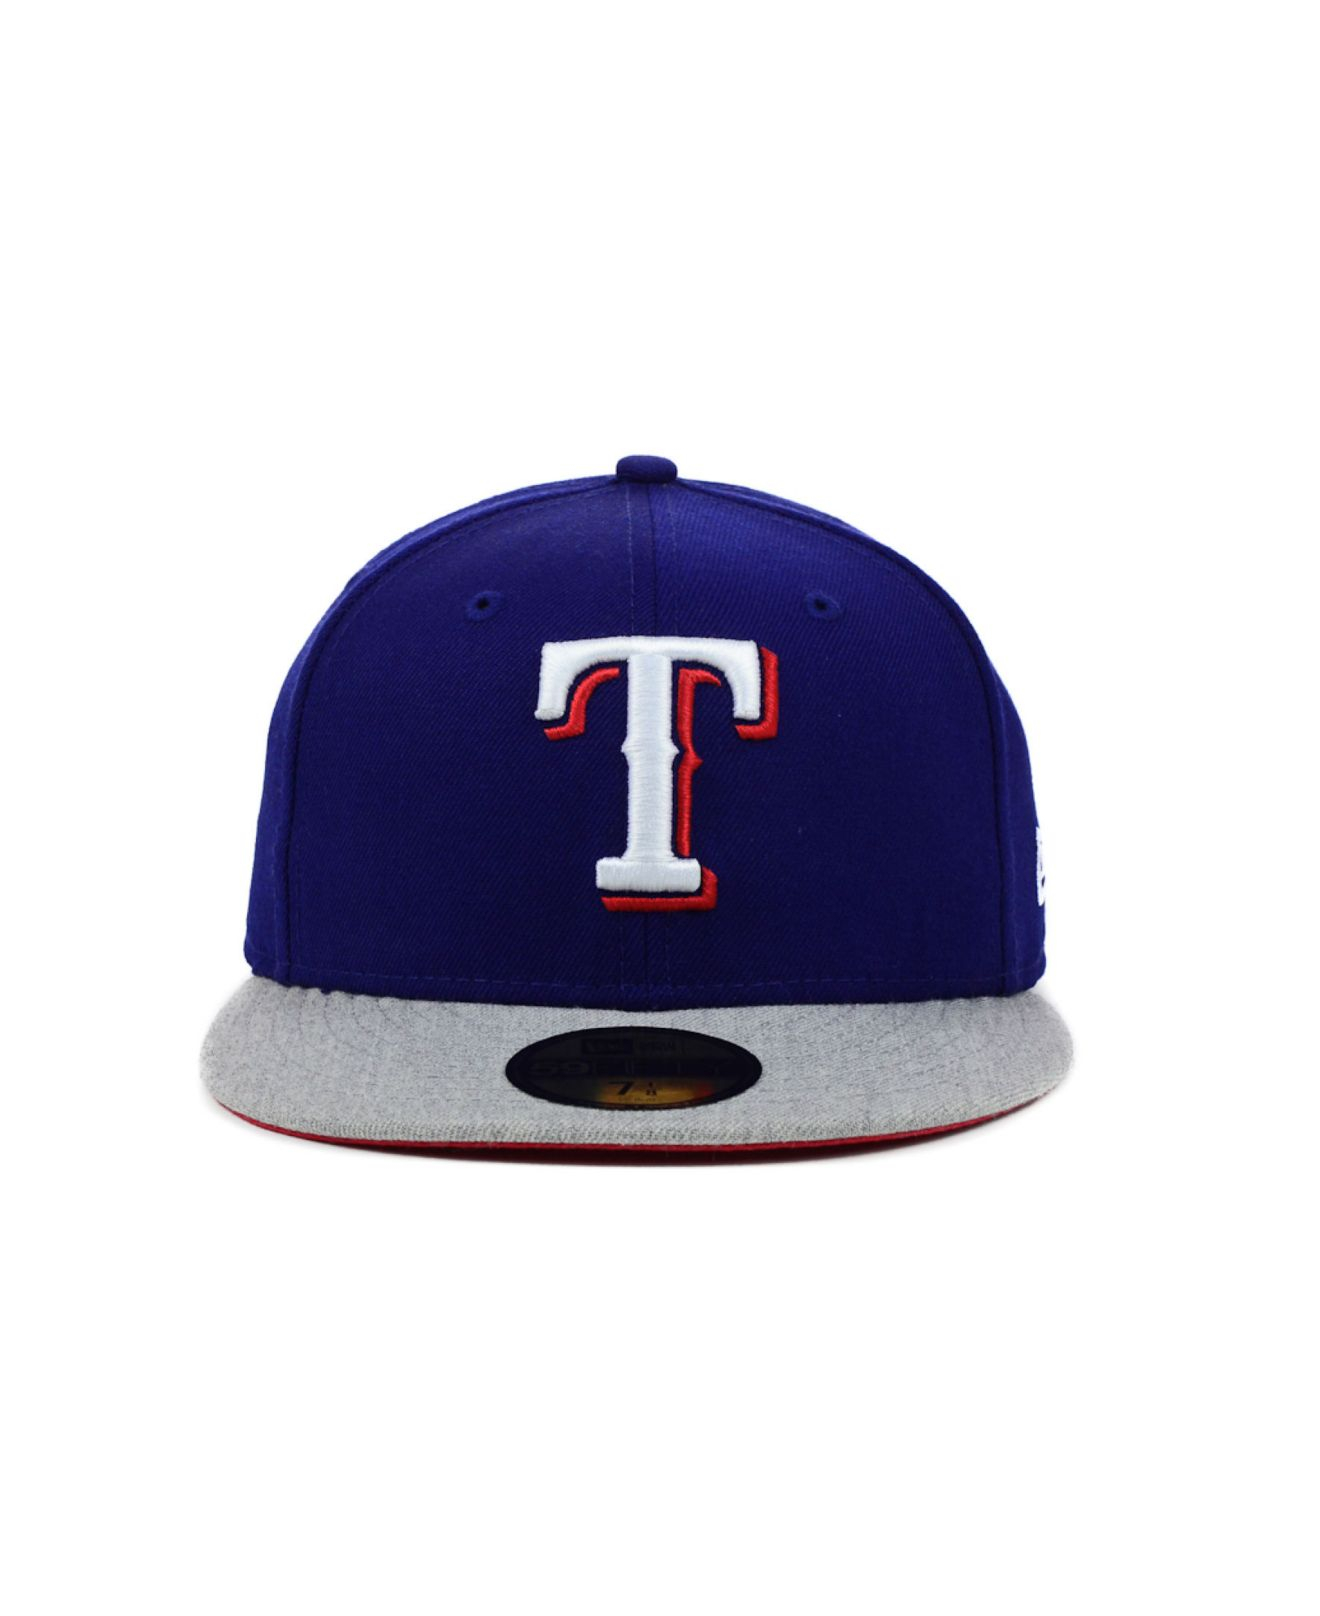 hot sale online 0e363 7f704 Lyst - KTZ Texas Rangers Mlb Team Heather 59fifty Cap in Blue for Men